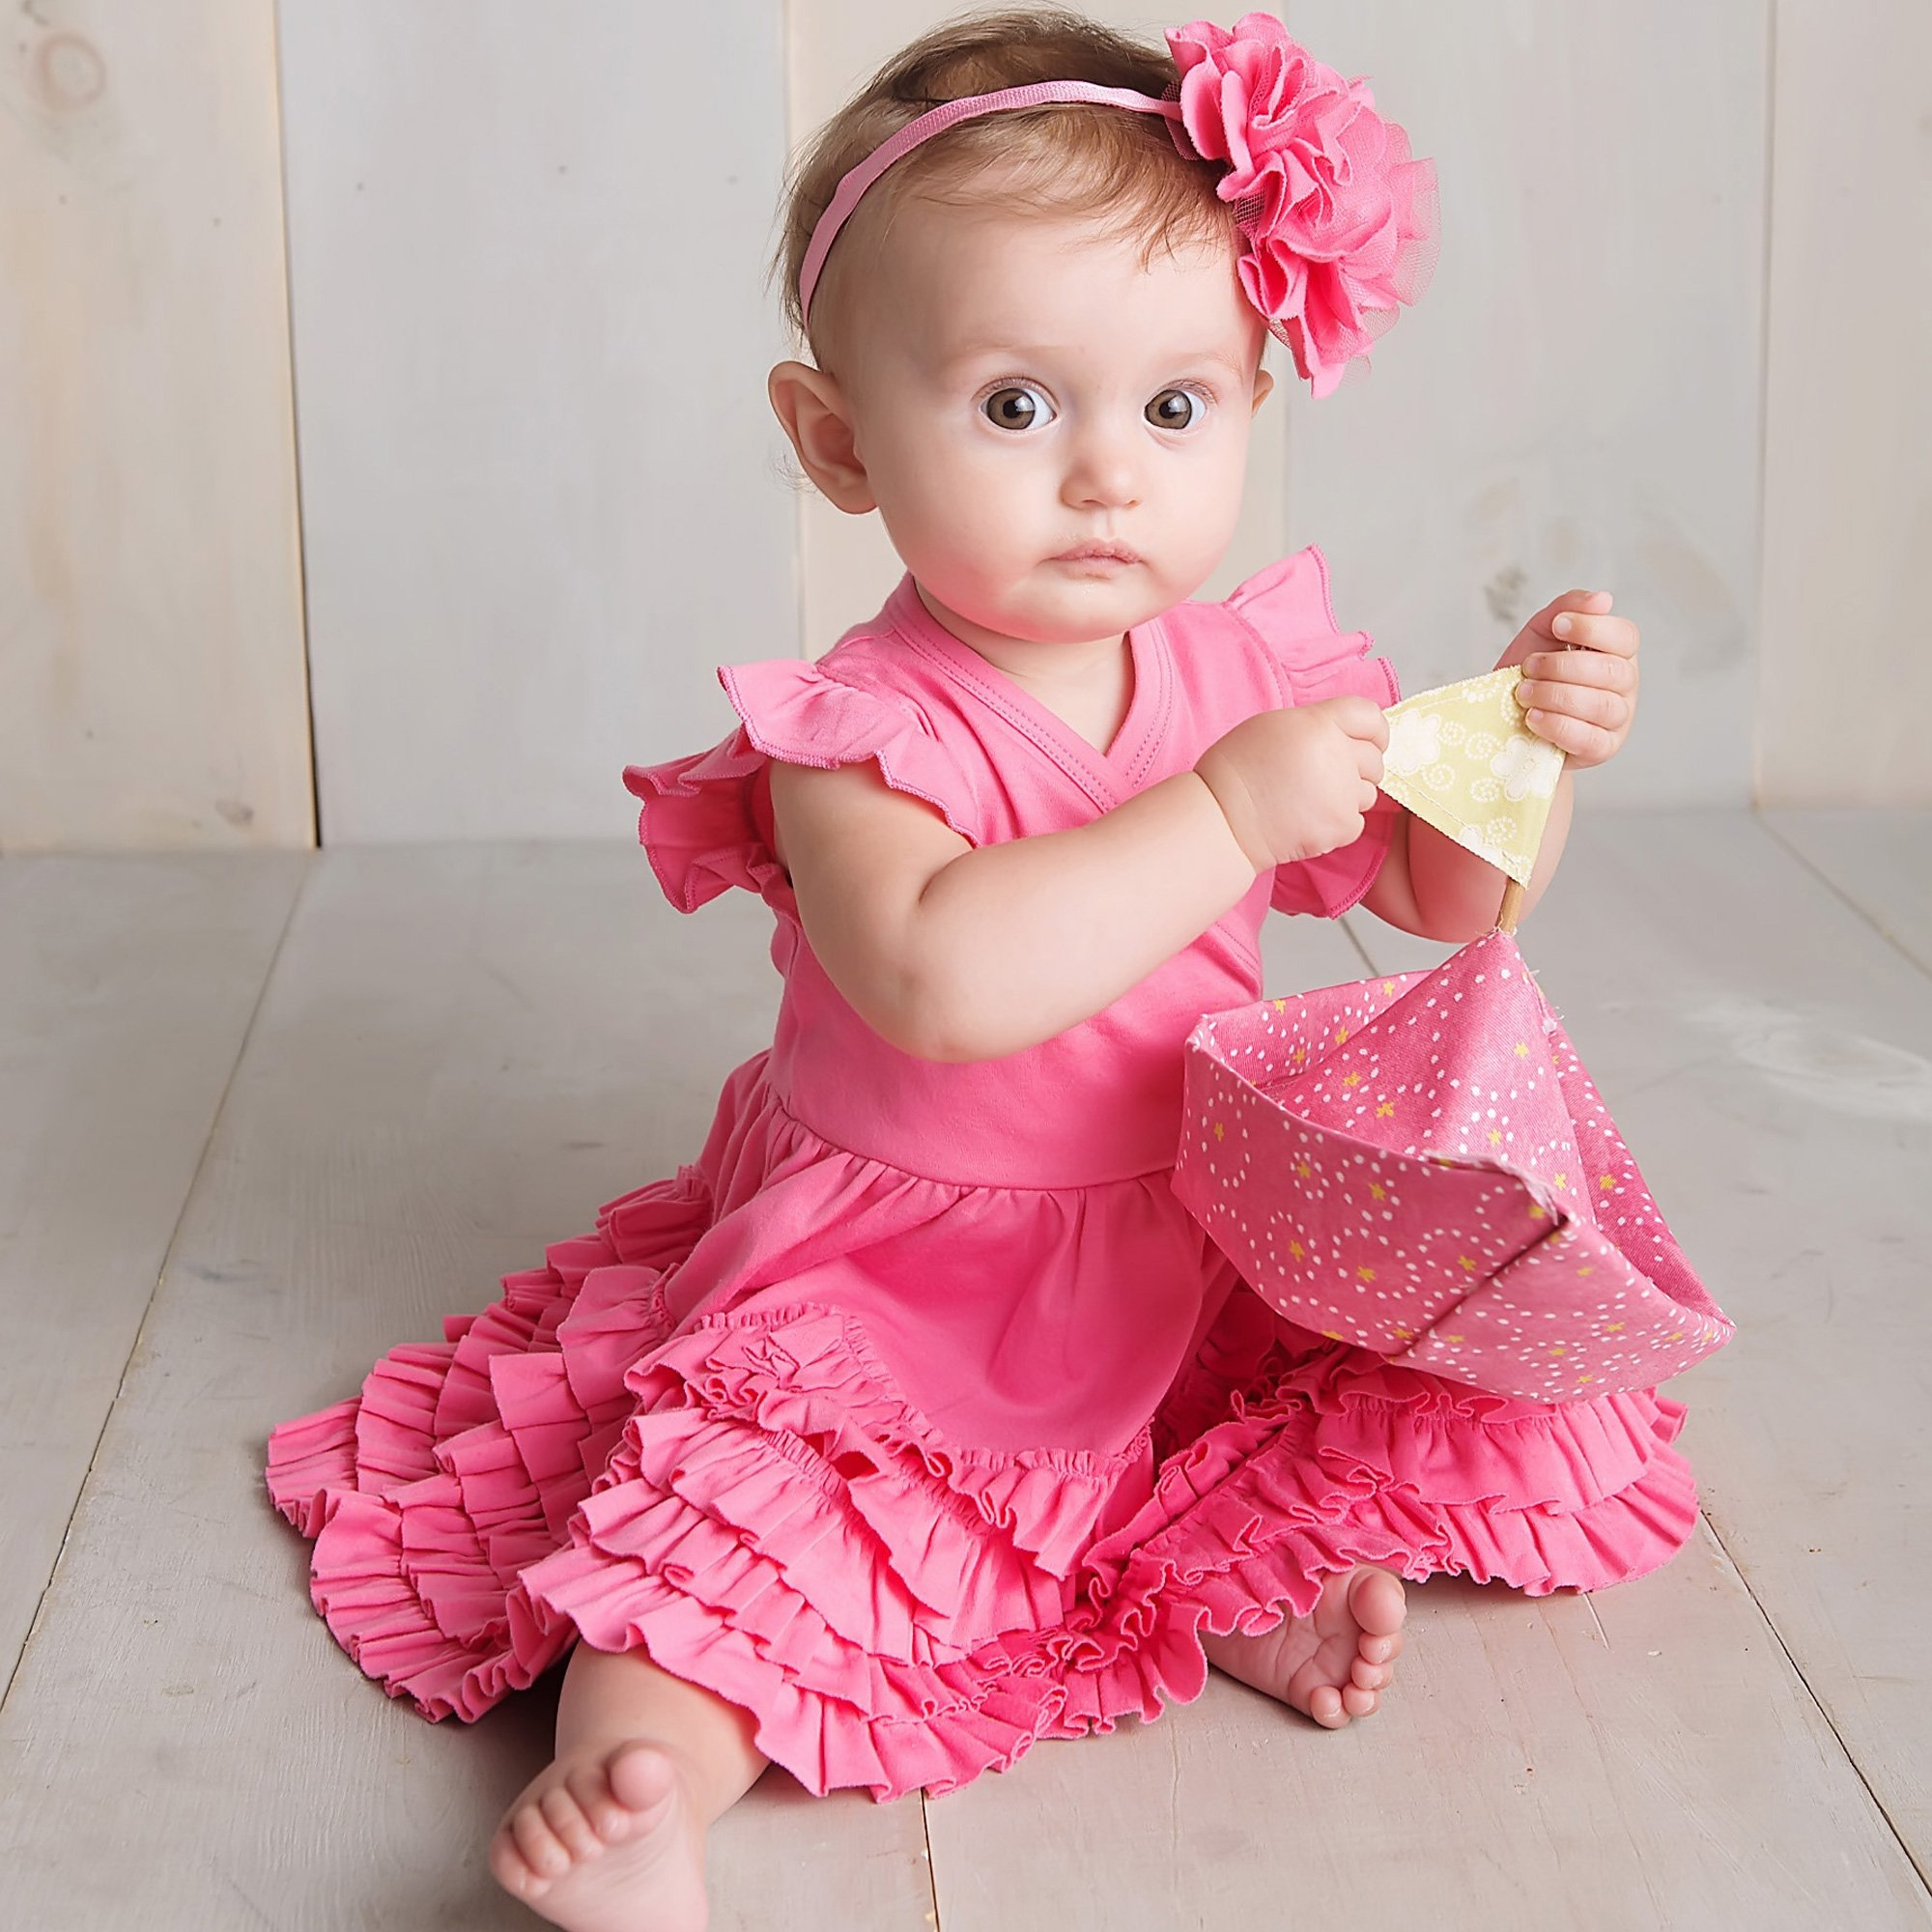 Lemon Loves Layette  Mia  Dress in Pink Lemonade  sc 1 st  Baby Bling Street & Lemon Loves Layette Mia Dress in Pink Lemonade